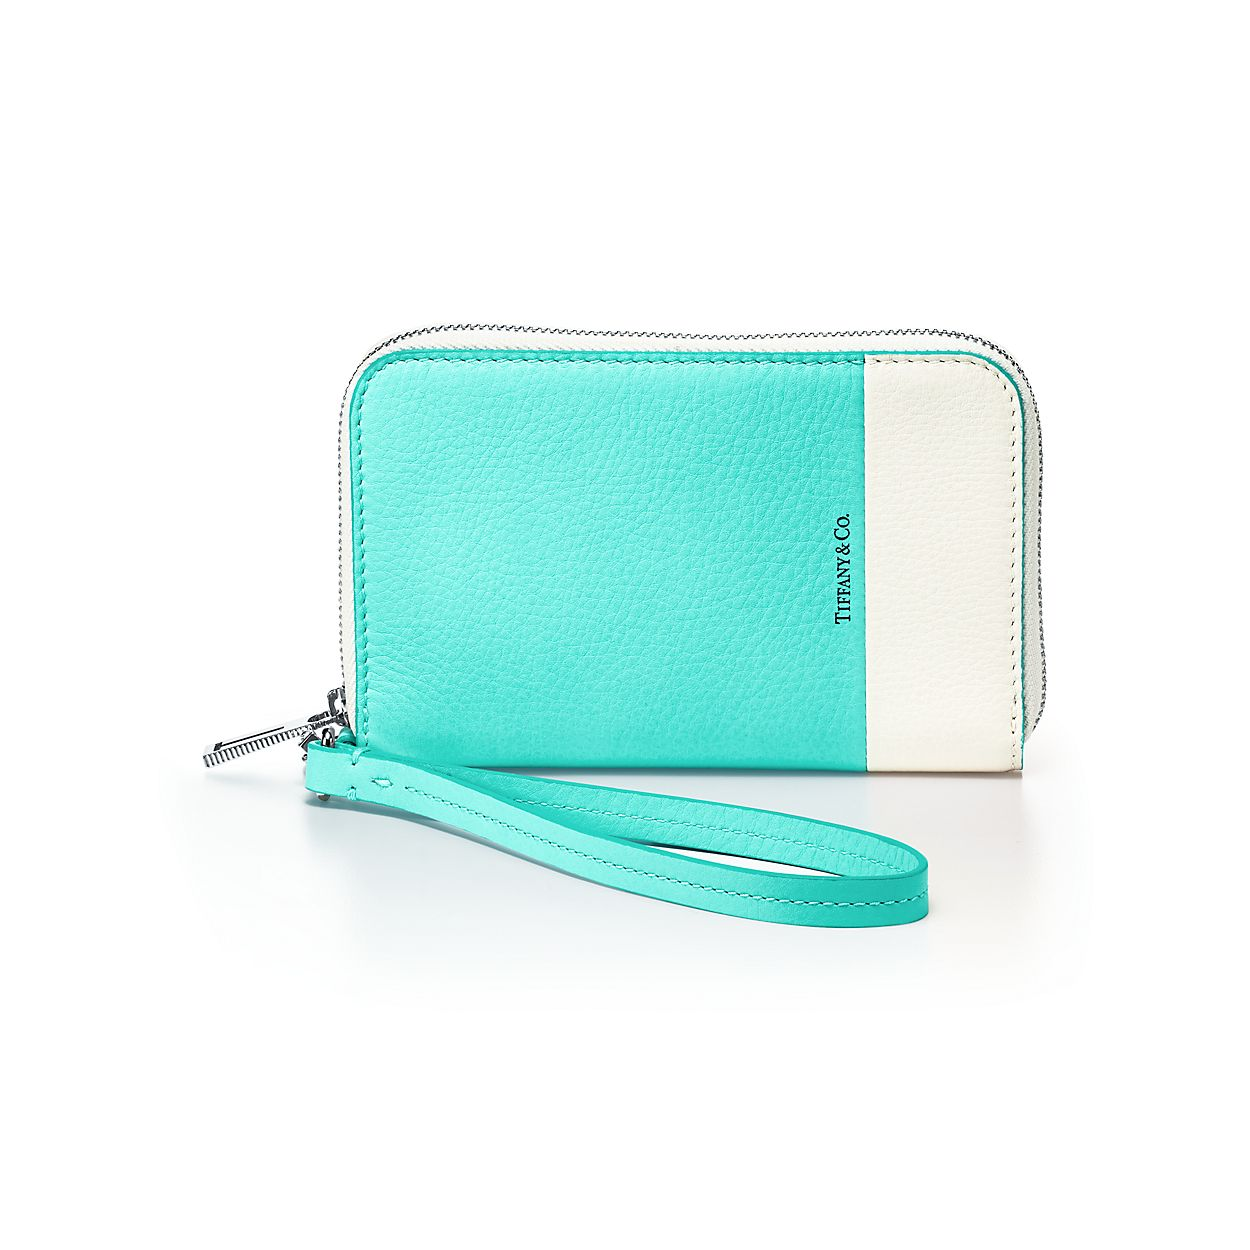 color block zip wallet in off white and tiffany blue grain calfskin